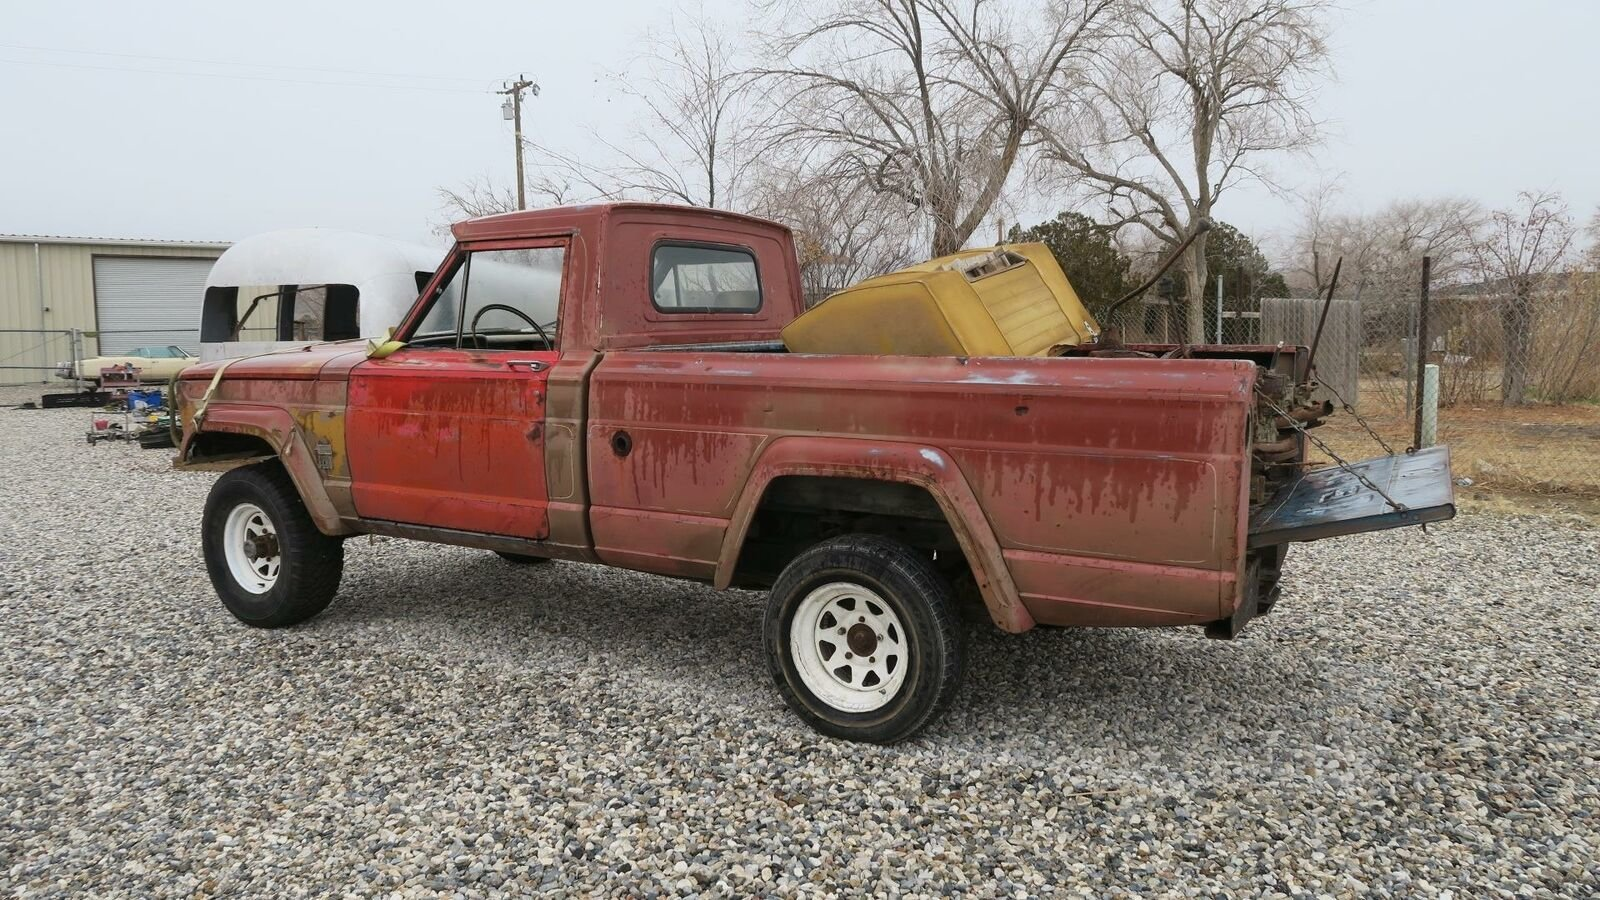 1964 AMC Jeep GLADIATOR 4X4 Puck Up TRUCK Project  $3.5k For Sale (picture 2 of 6)